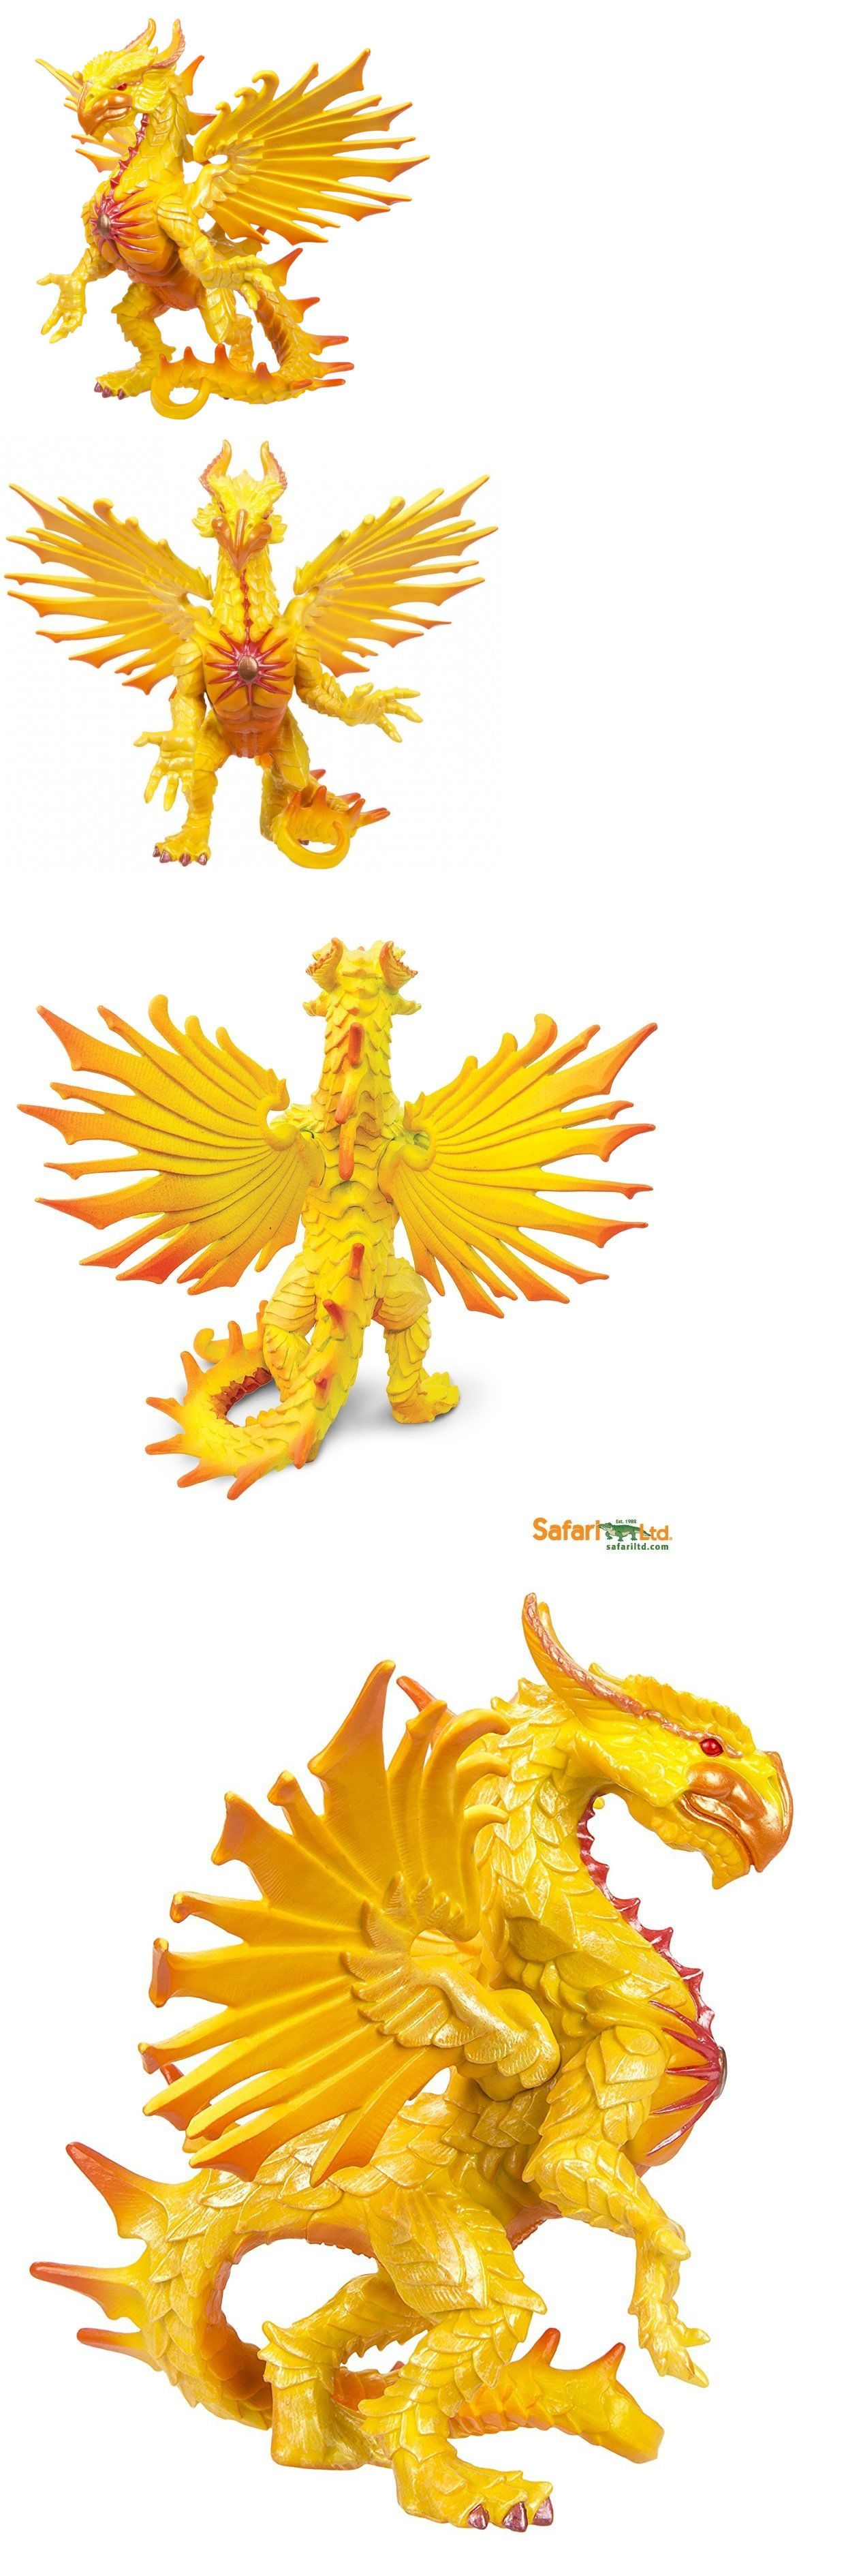 Sun Dragon ~ Safari Ltd # 10134 ~ mythical figure toy